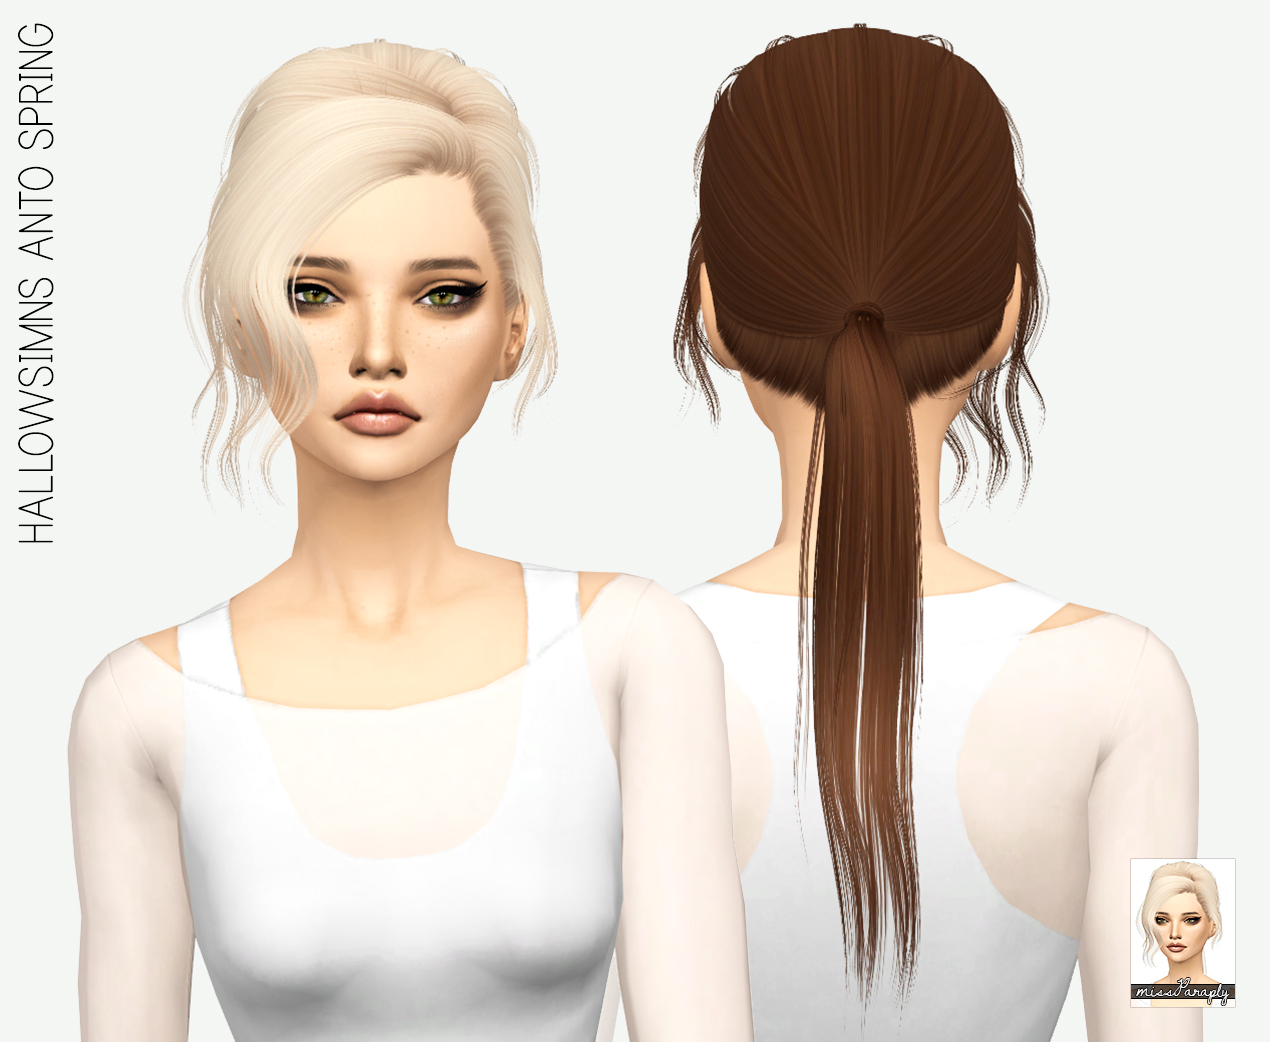 HALLOWSIMS ANTO SPRING  in 64 Colors by MissParaply